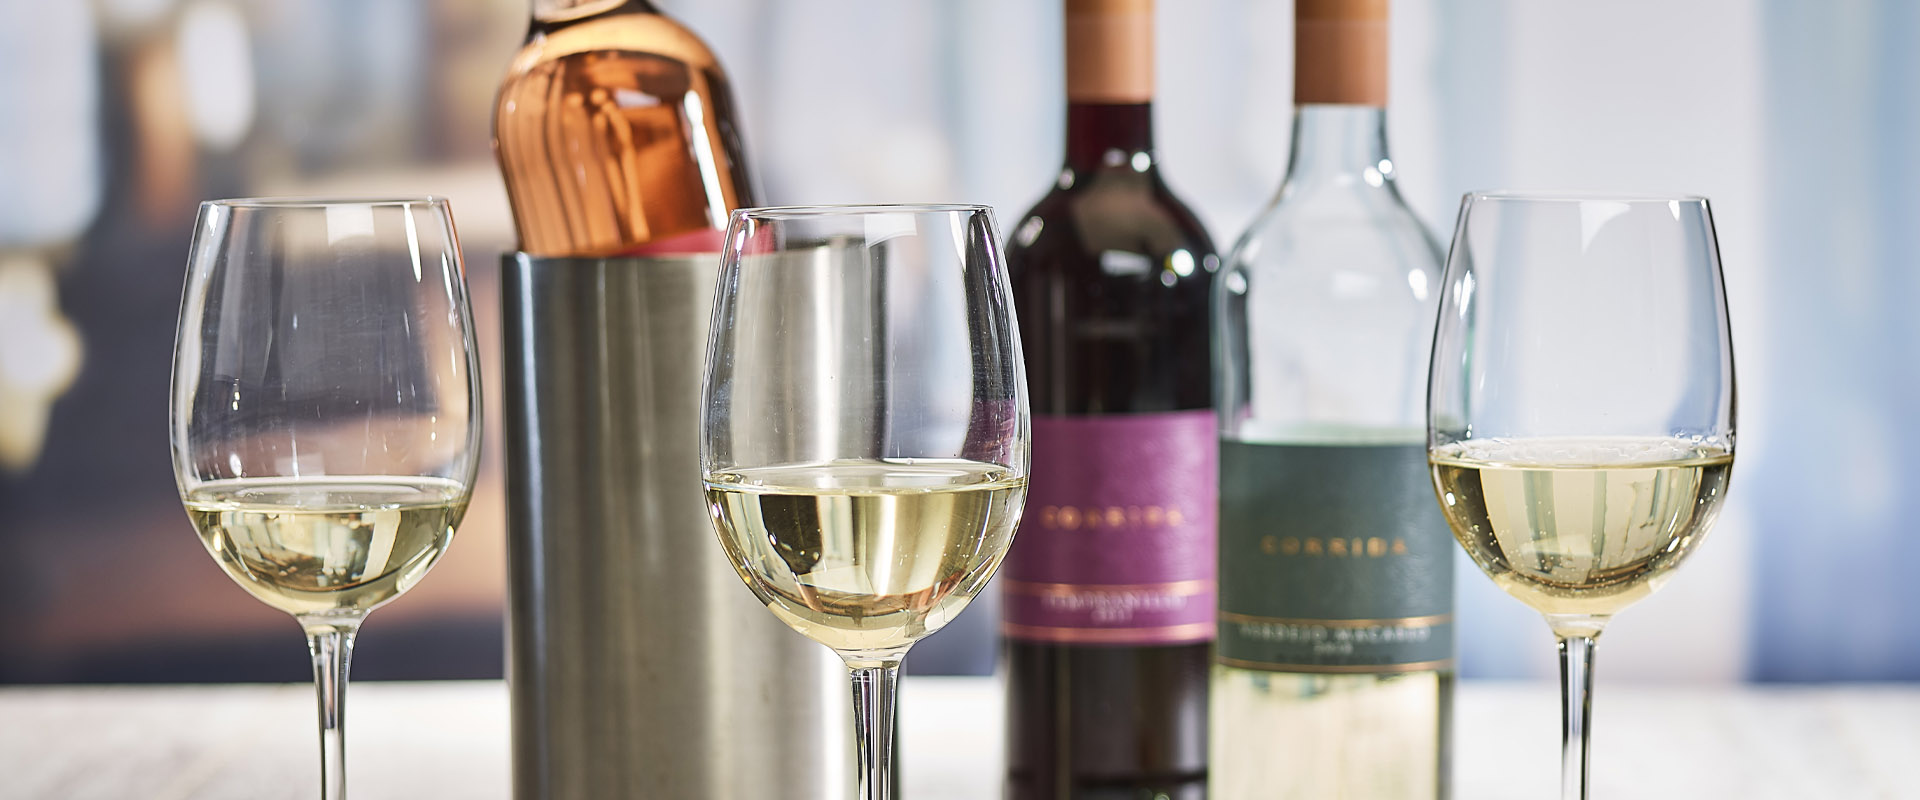 Pre-Pay for Wine this Christmas at Cricketers Inn